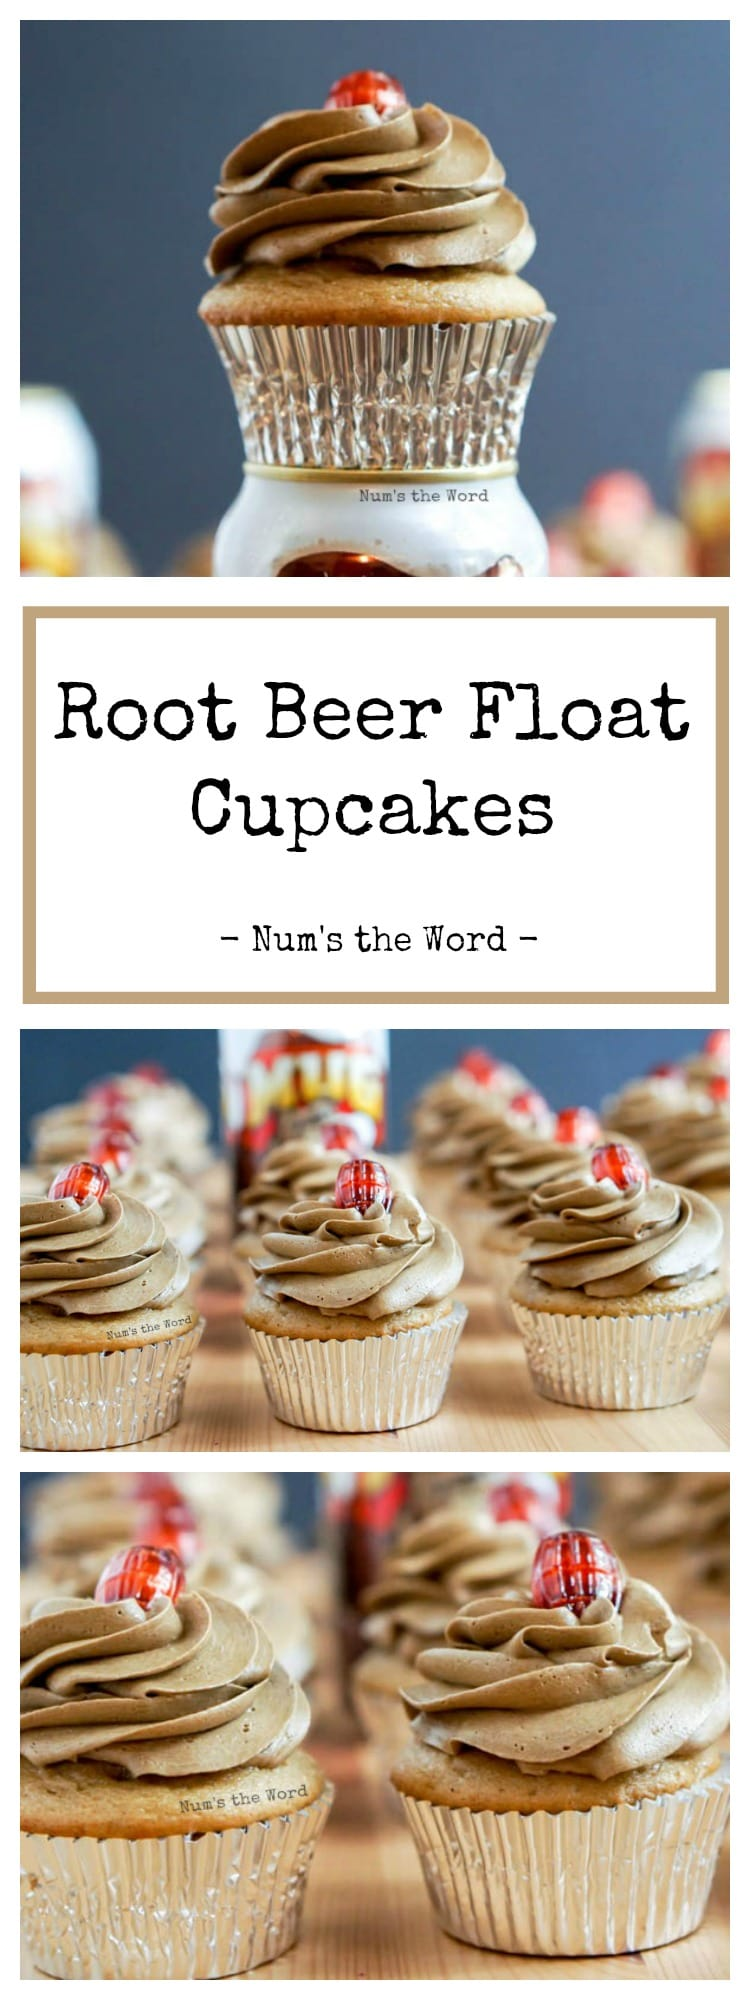 ROOT BEER FLOAT CUPCAKES RECIPE WITH ROOTBEER NUM S THE WORD